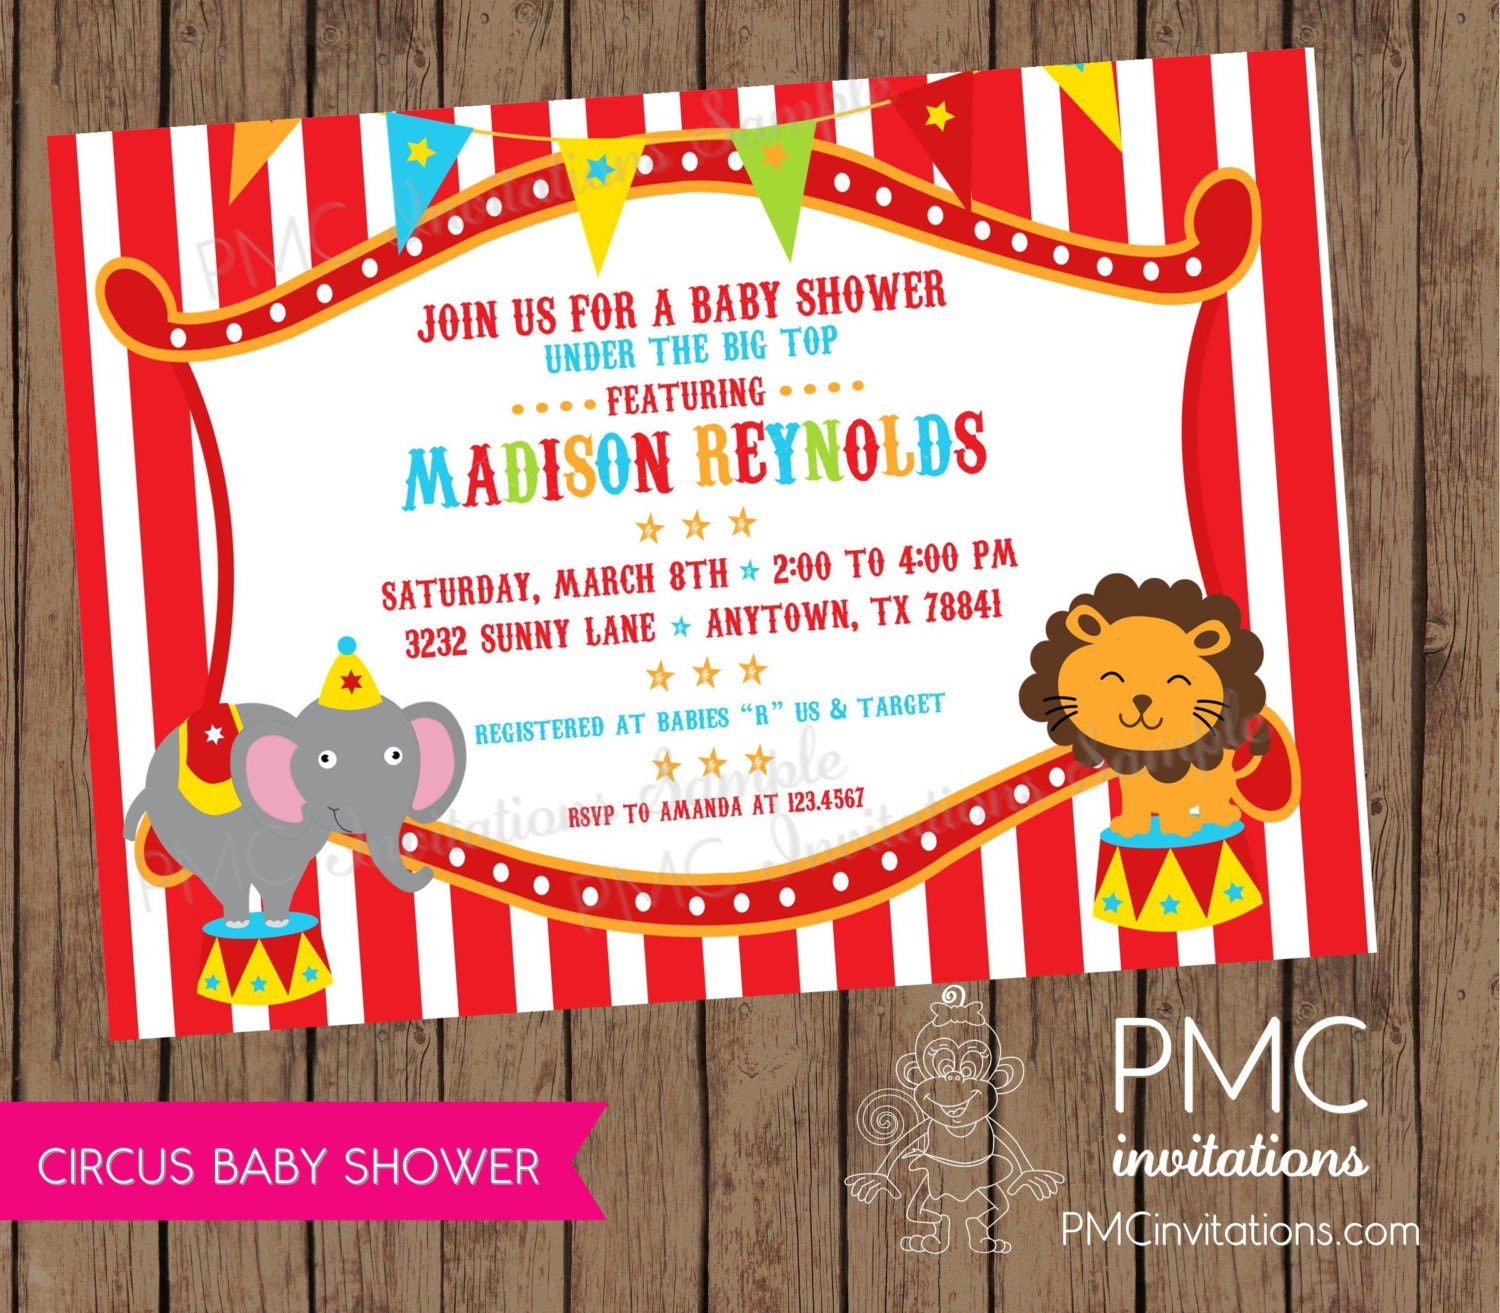 Circus Baby Shower Invitations 1.00 each with envelope